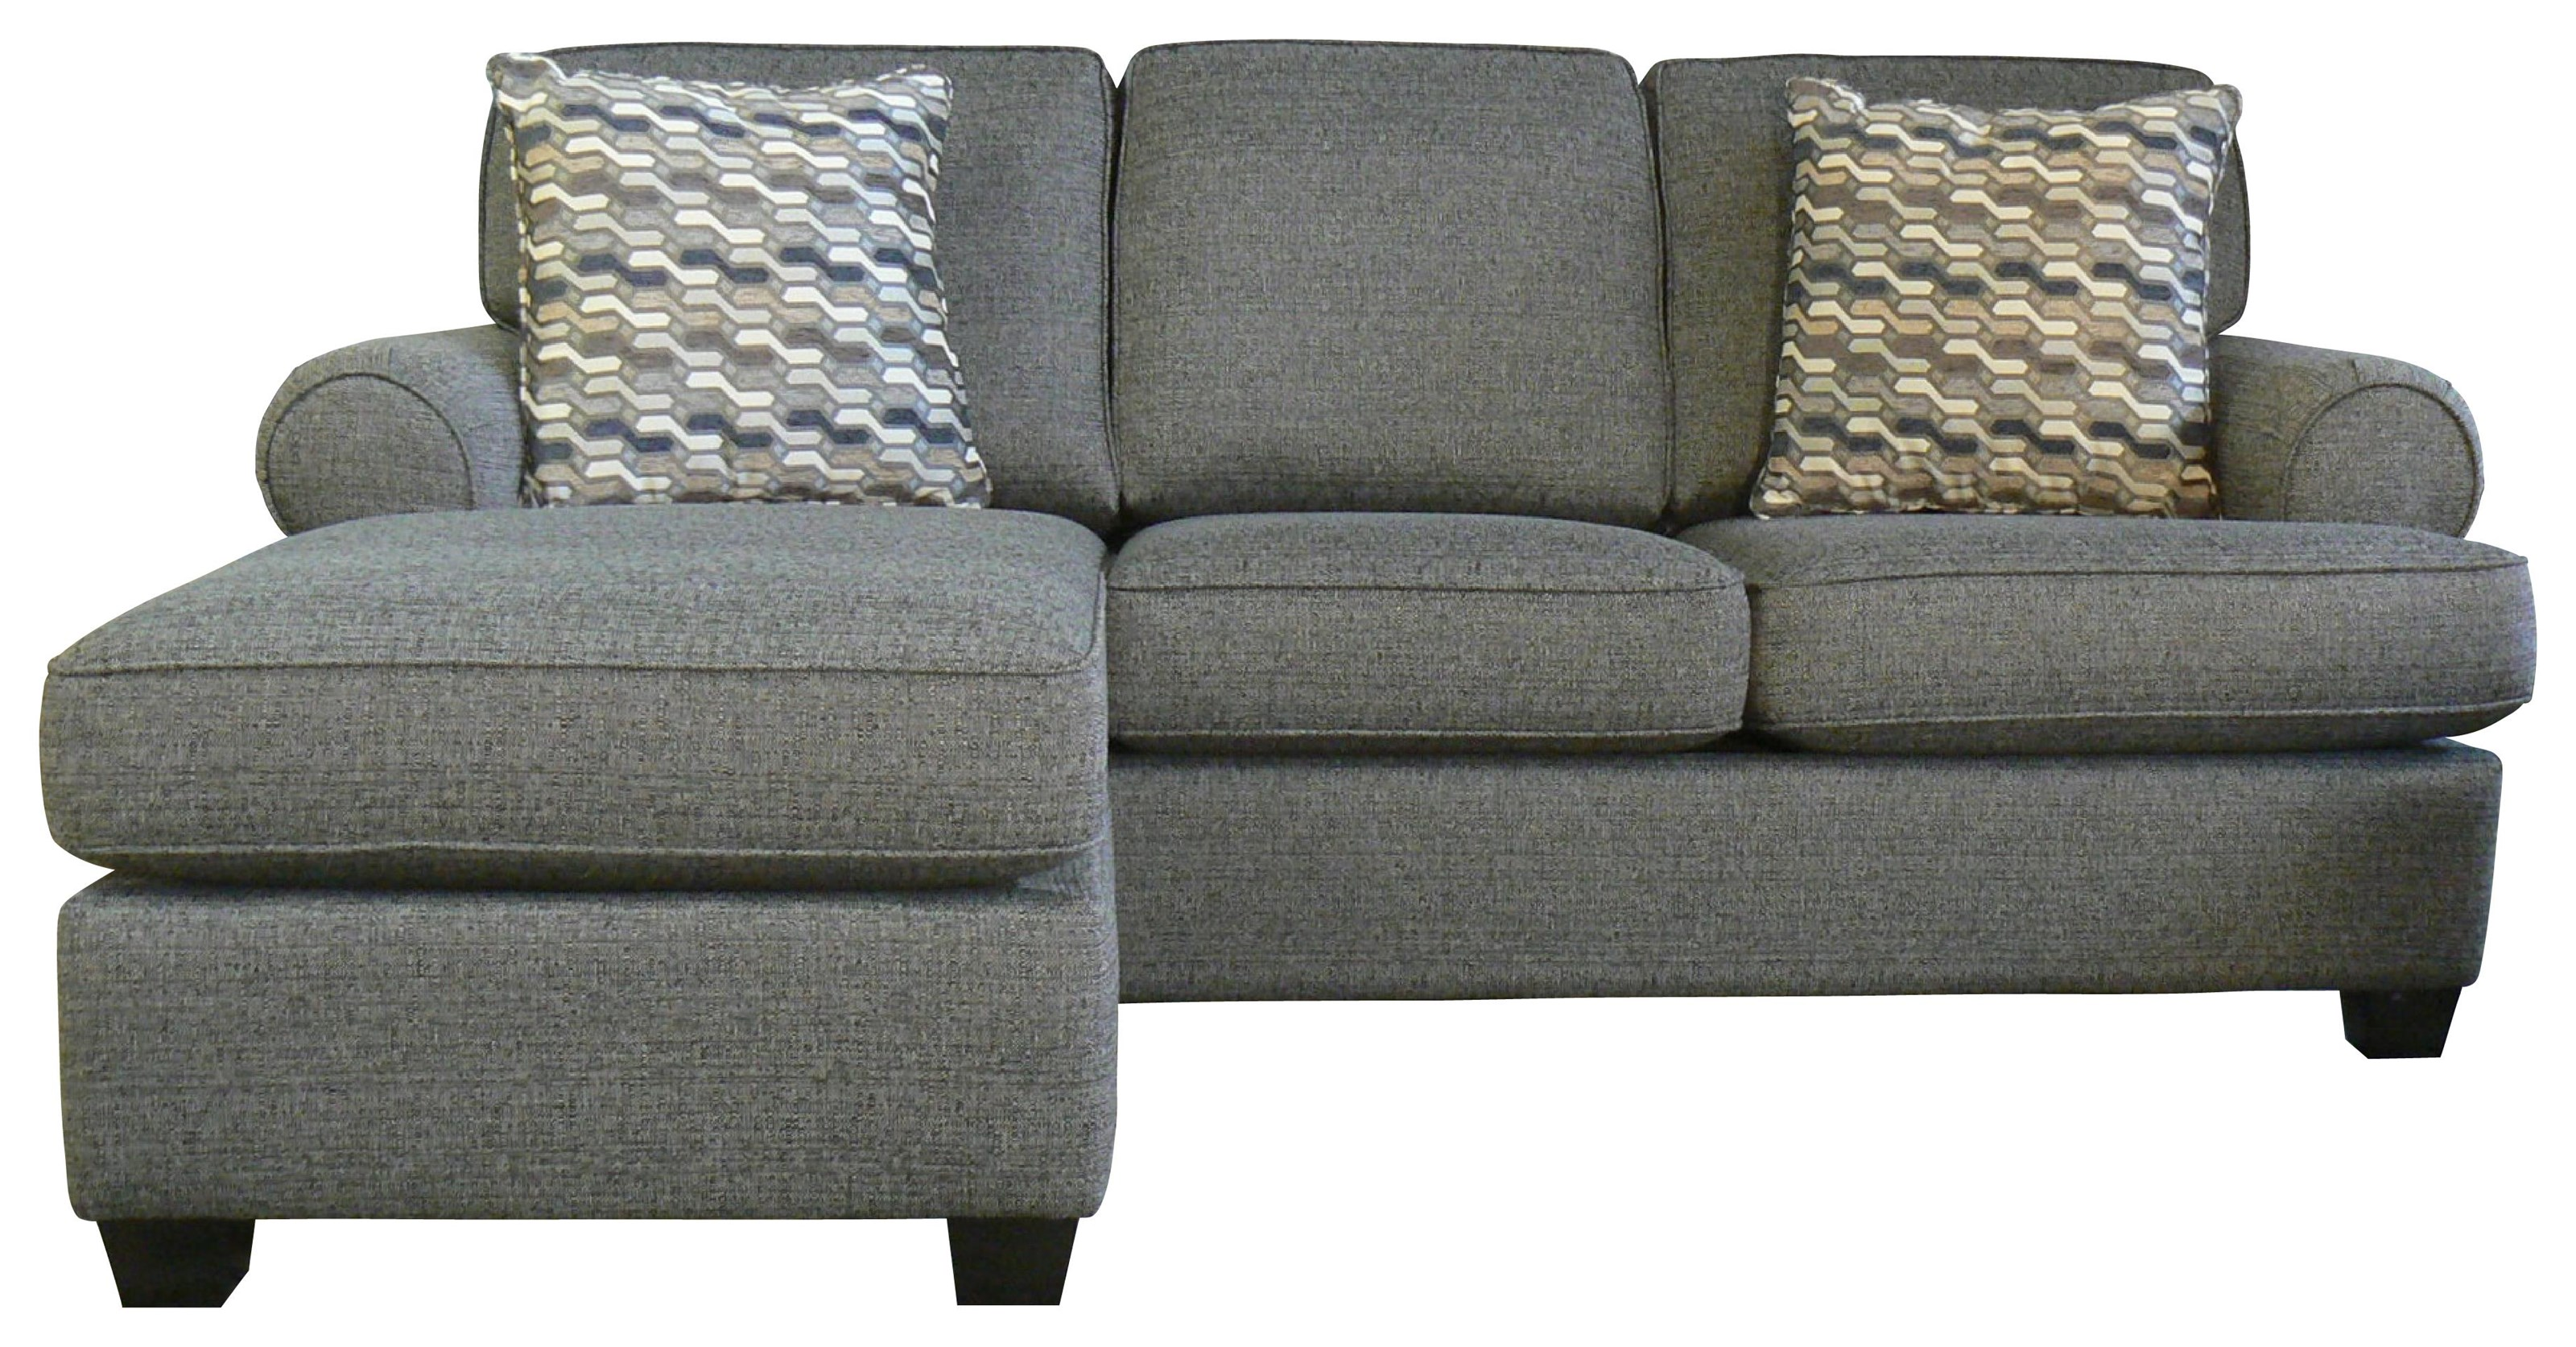 Daly Sofa with Chaise by Taelor Designs at Bennett's Furniture and Mattresses